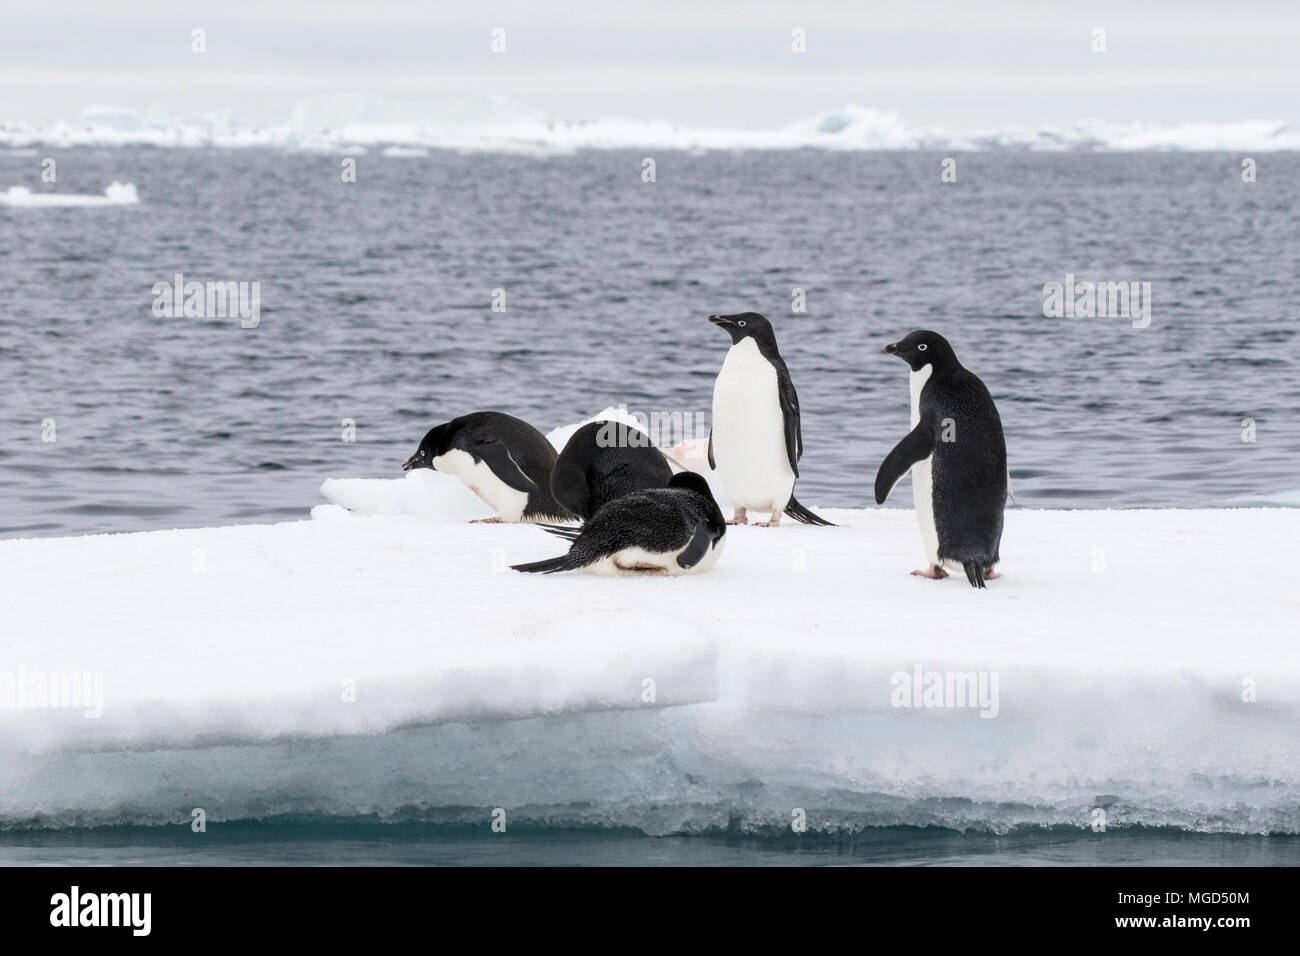 Adelie penguin Pygoscelis adeliae group of adults standing on iceberg at breeding rookery or colony, Paulet Island, Weddell Sea, Antarctica - Stock Image